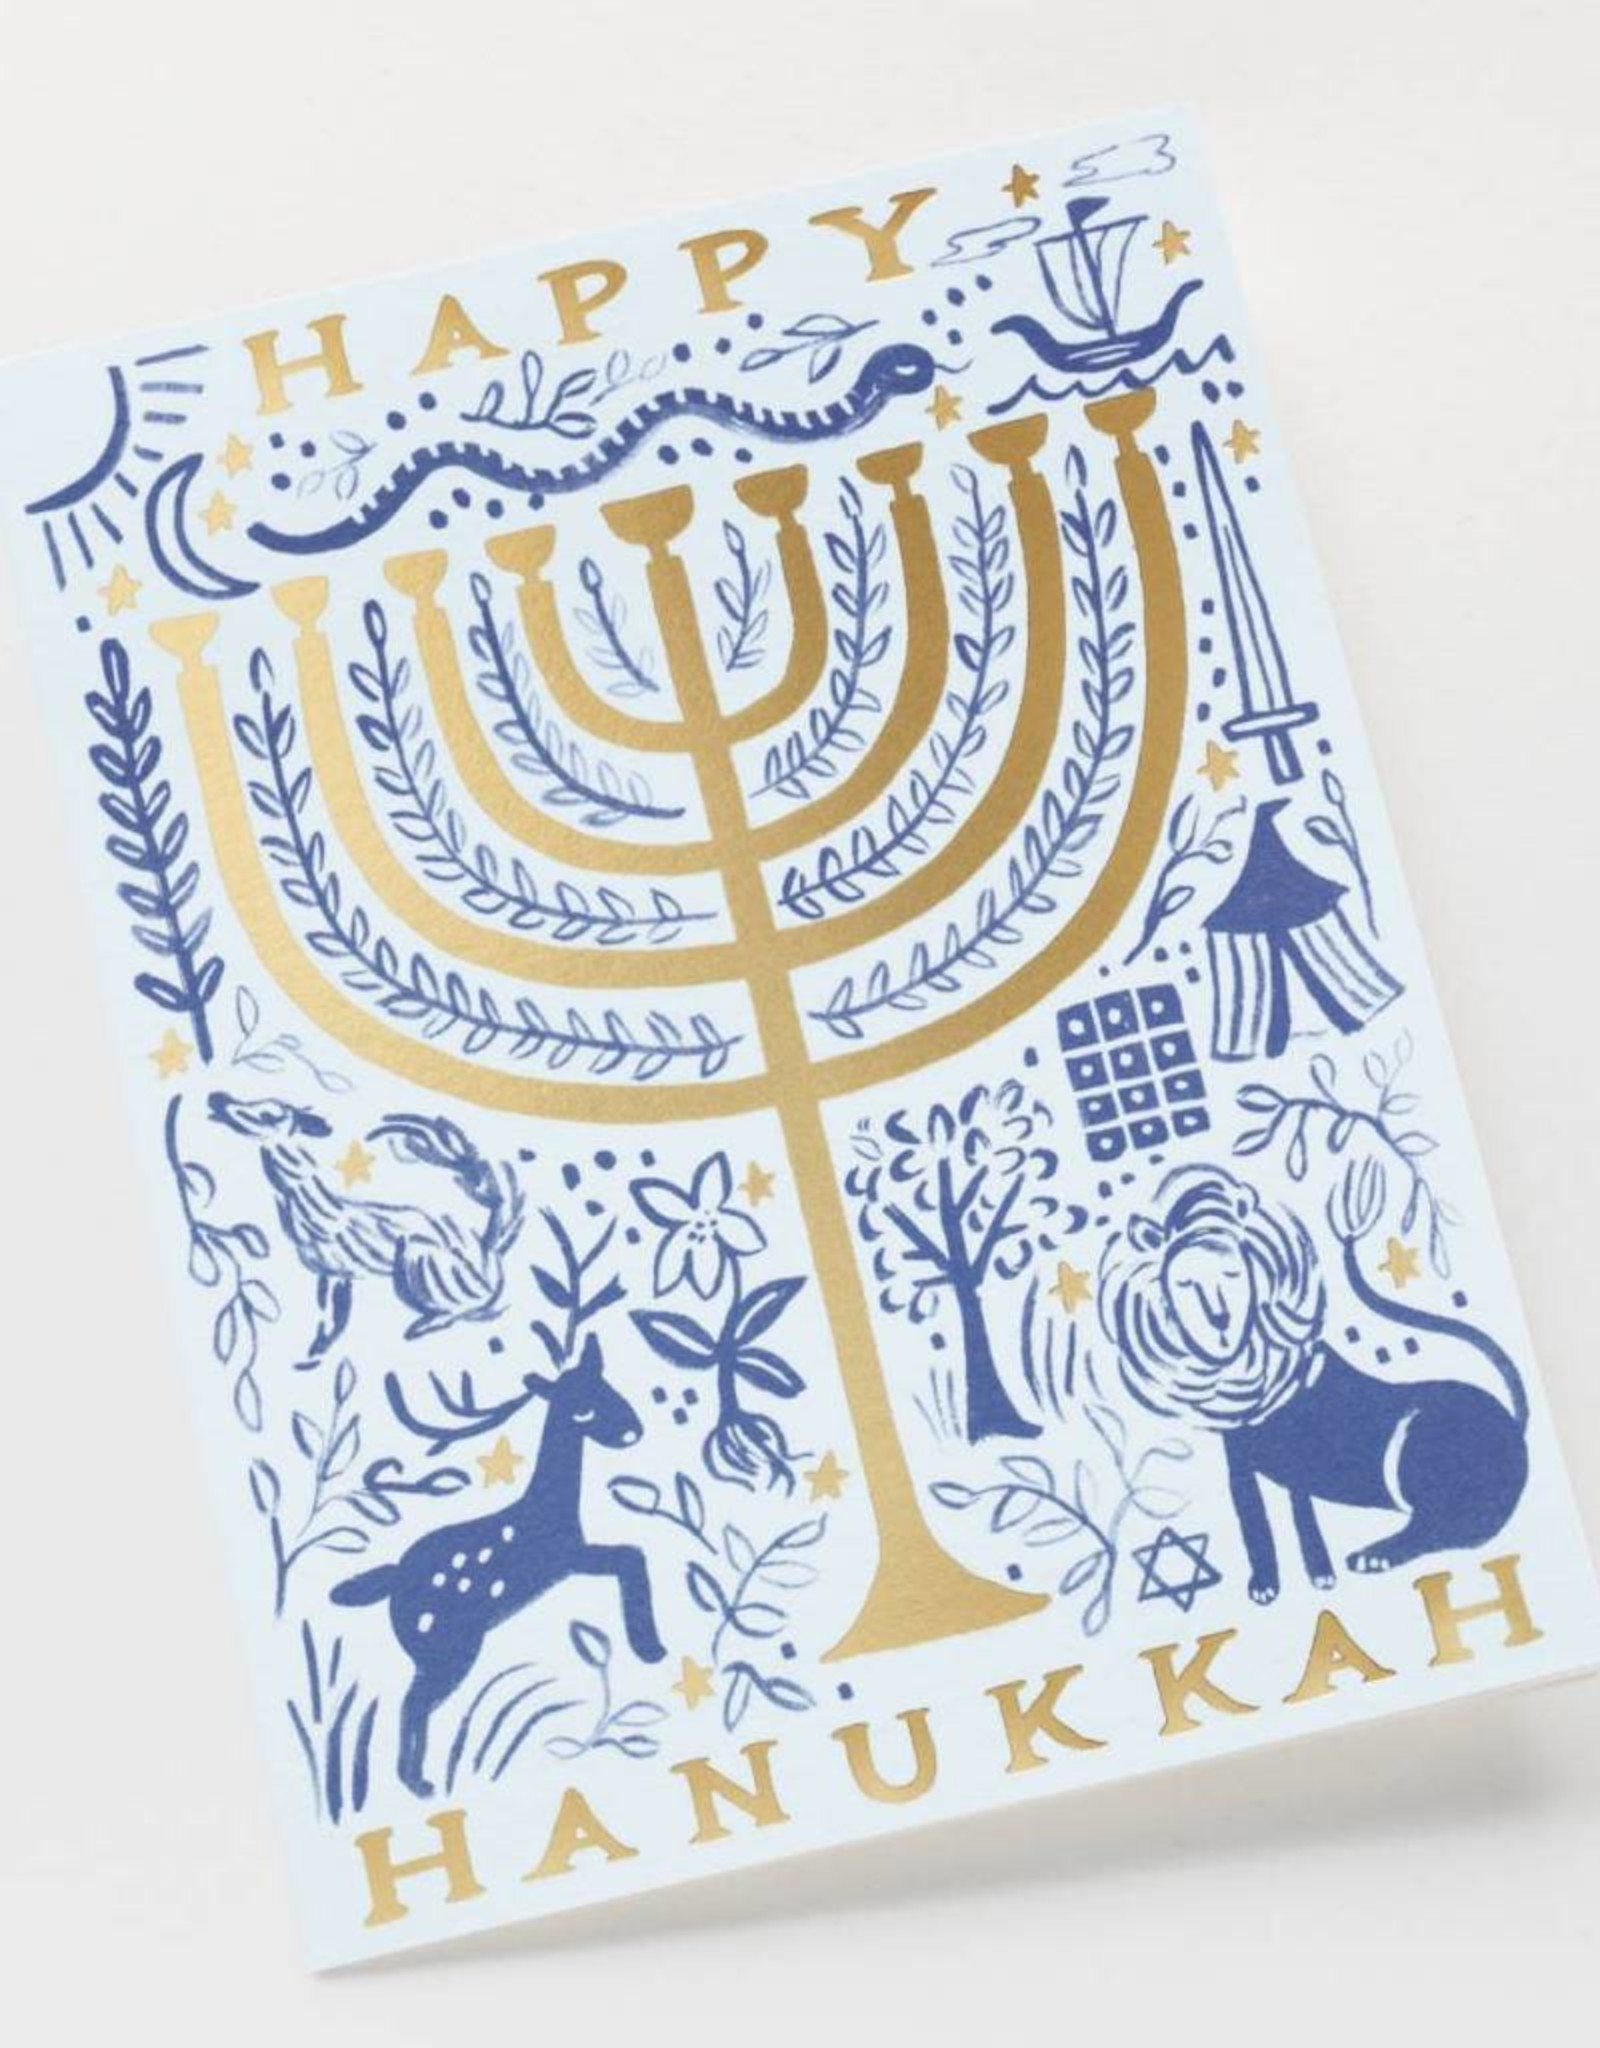 Twelve Tribes Menorah Card